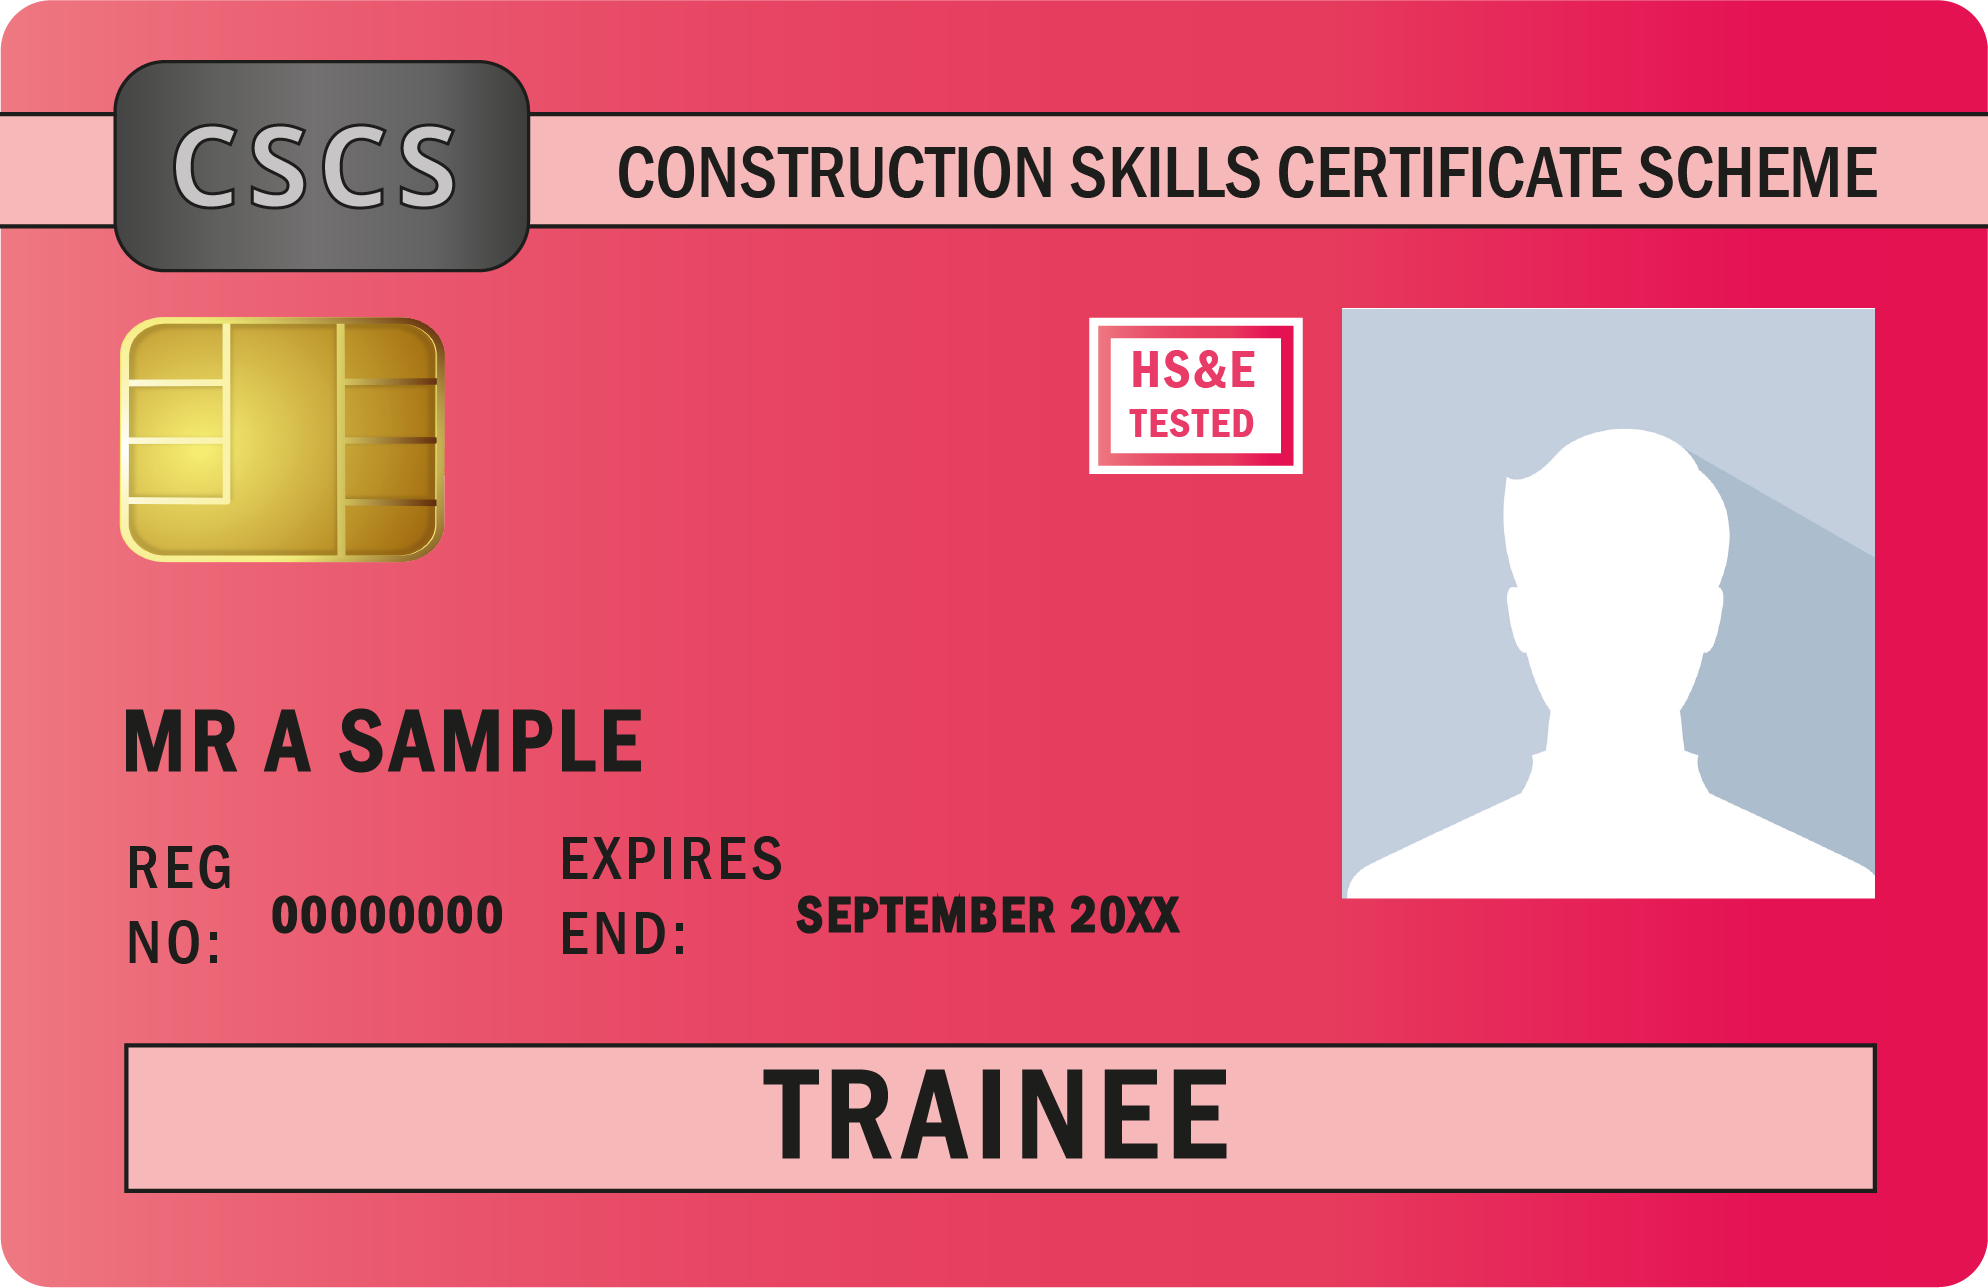 Image shows Trainee Red Card